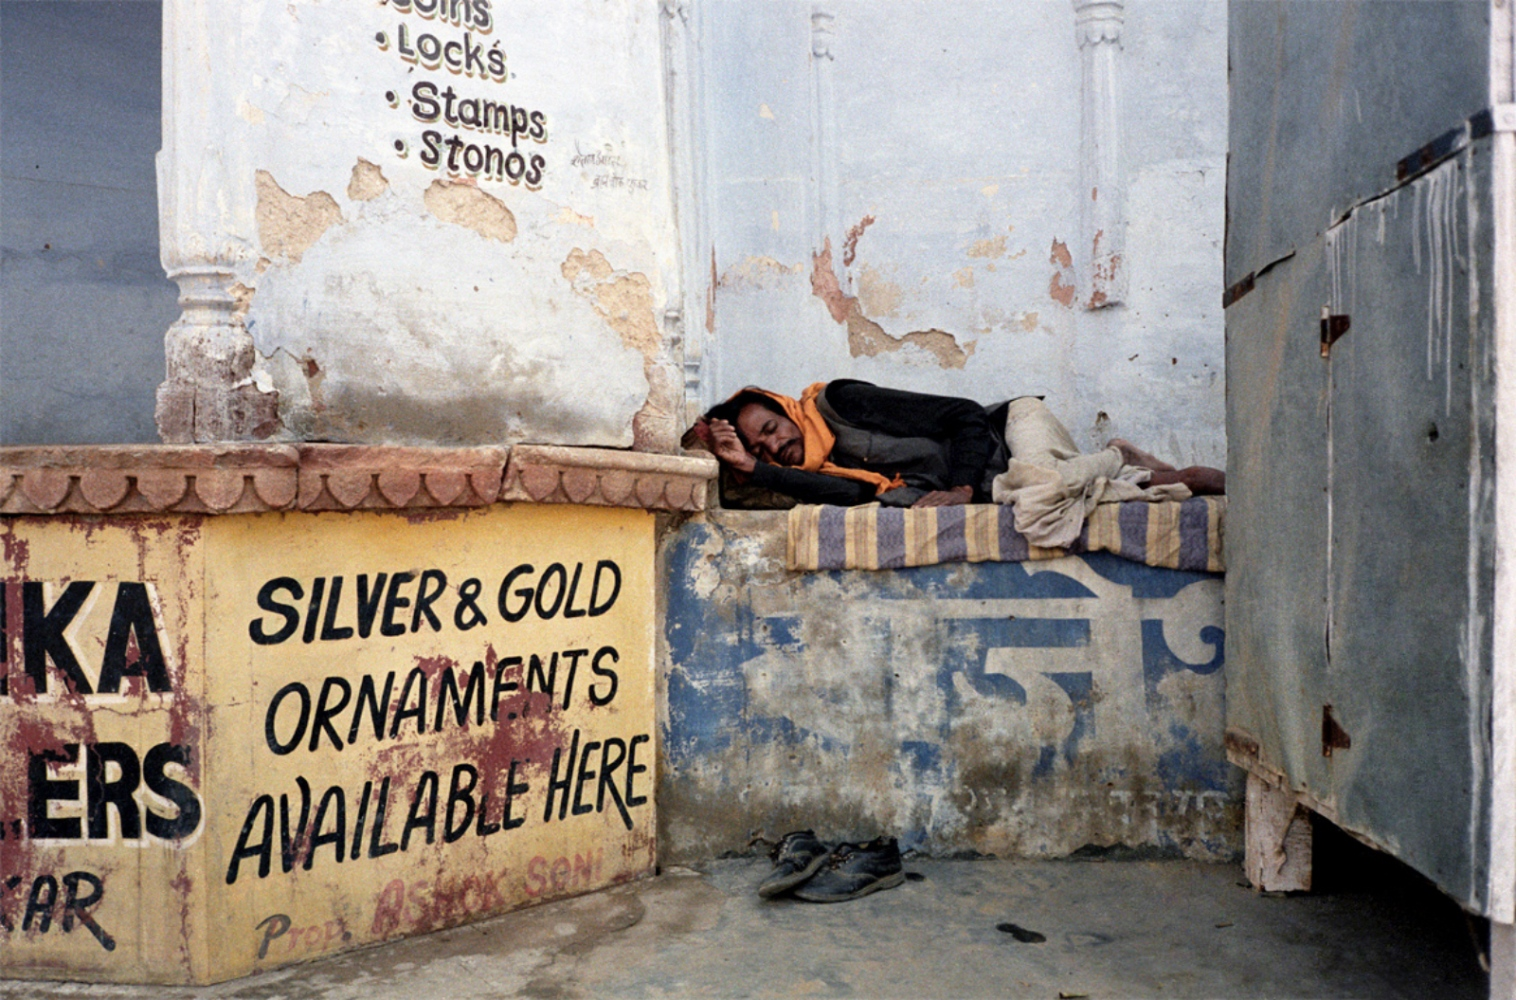 Sleeping Man, Silver and Gold, Pushkar, India, November 2003